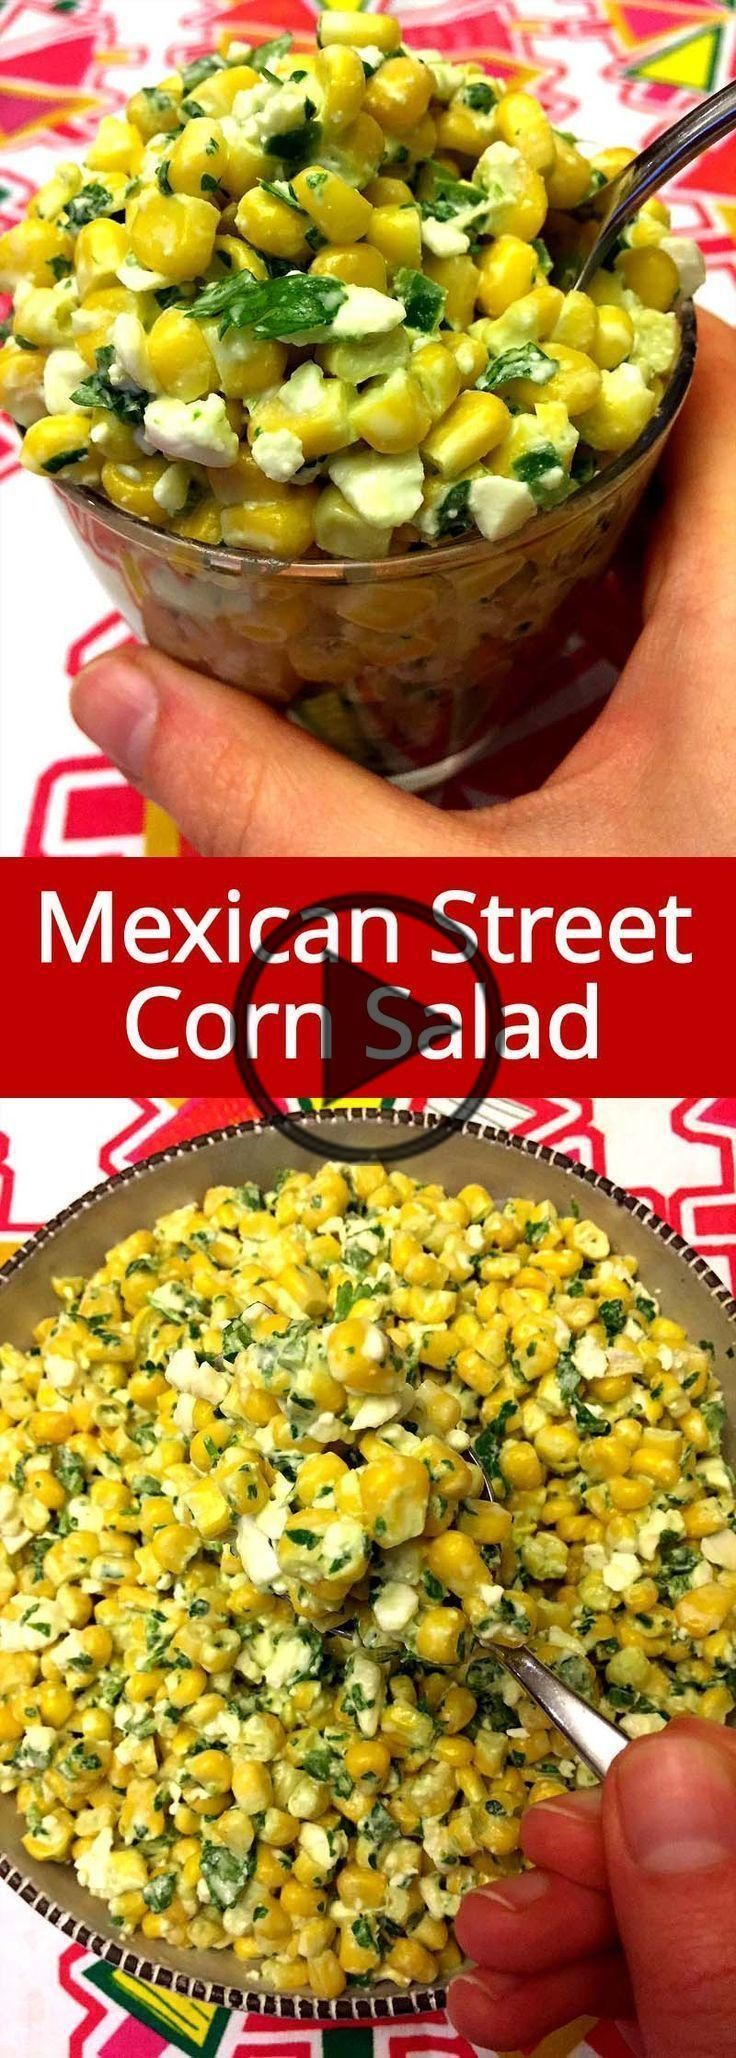 Mexican Street Corn Salad This Mexican street corn salad recipe is amazing! So refreshing and... #mexicanstreetcorn